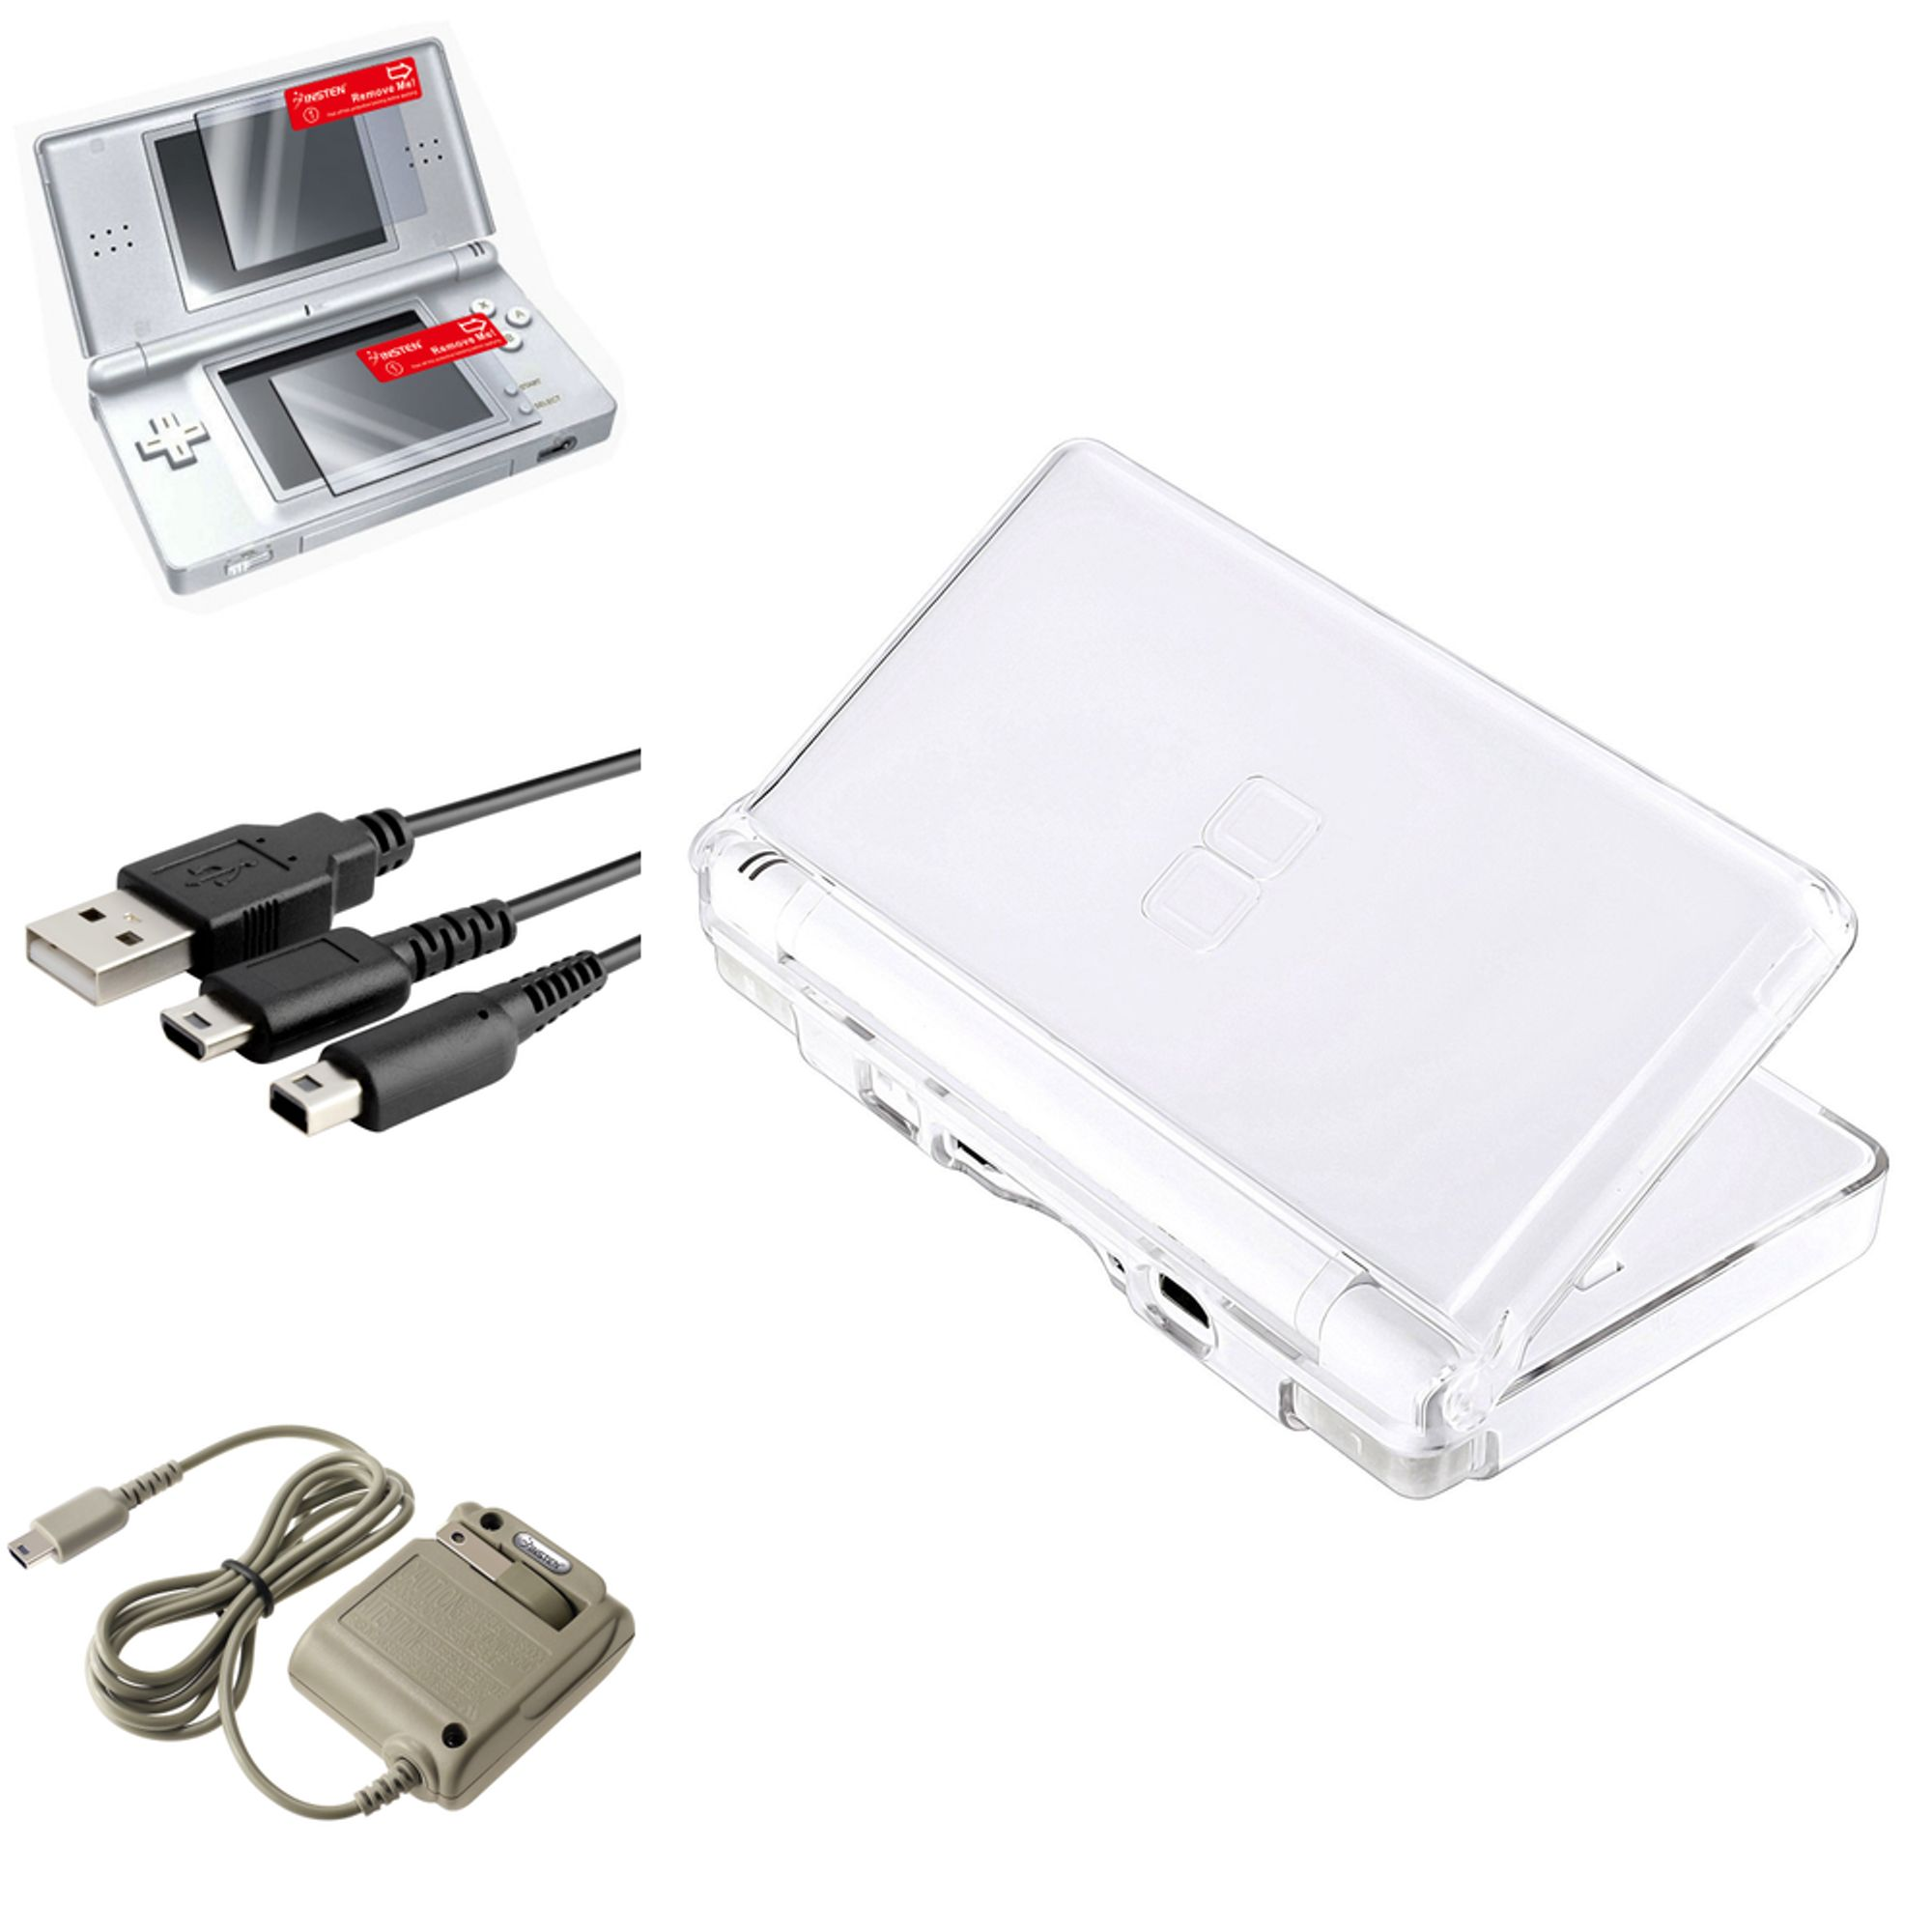 Nintendo DS LiteCrystal Case + Charging Cable + Travel Charger + 2 LCD Protector